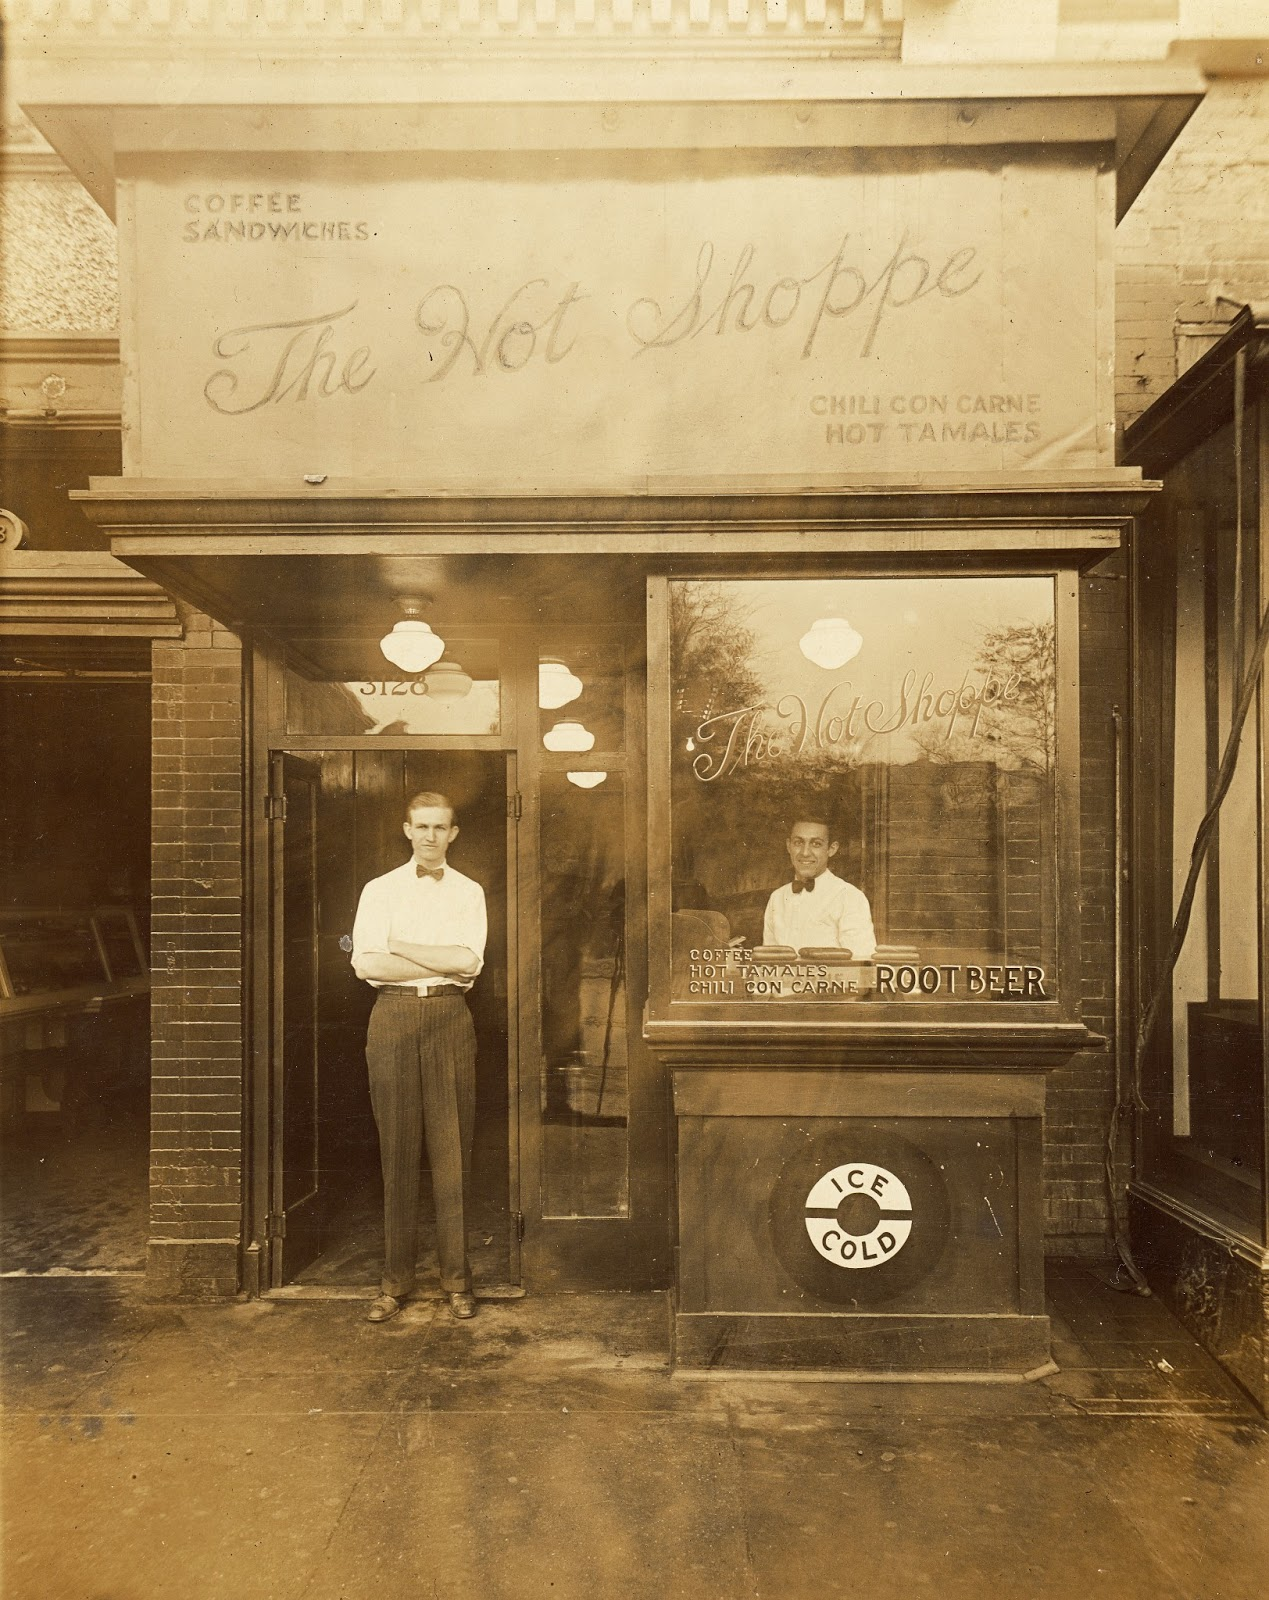 cac1051c4eb5 The original Hot Shoppe on 14th Street (photo courtesy Historic Photographs  collection